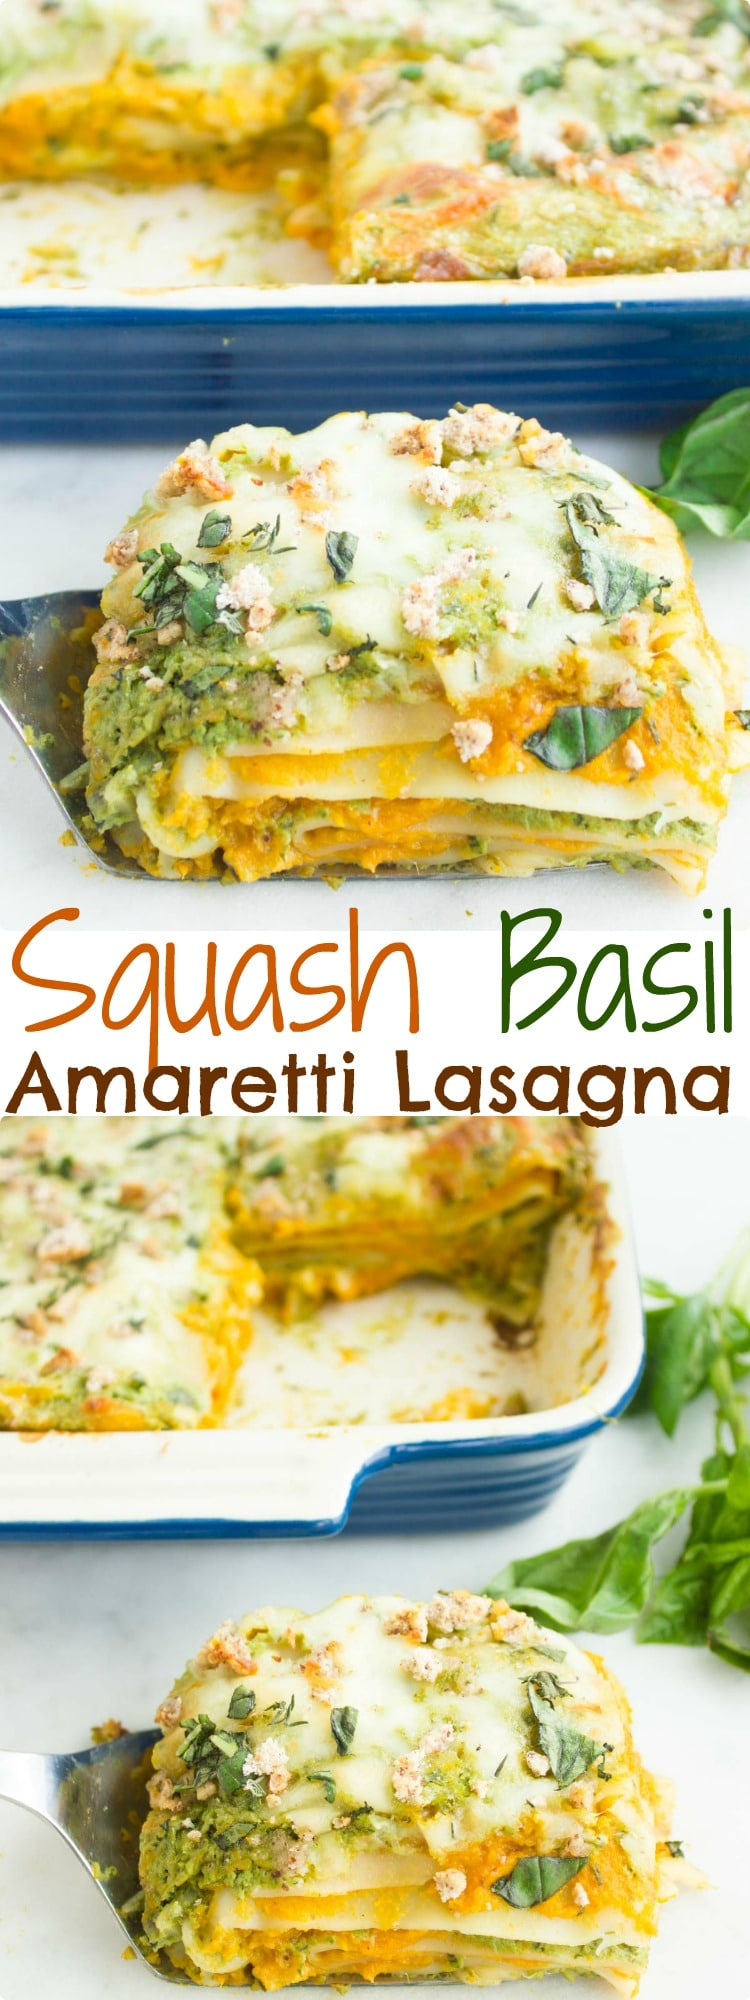 Butternut Squash Lasagna with Basil Bechamel & Amaretti Cookies | This fall-inspired Butternut Squash Lasagna is layered with sweet and nutty squash puree, crumbled Italian Amaretti cookies and a basil-scented bechamel sauce! A show-stopping vegetarian pasta dish for guests! #pasta, #fall, #squash, #easy, #lasagna, #amaretti, #Italian